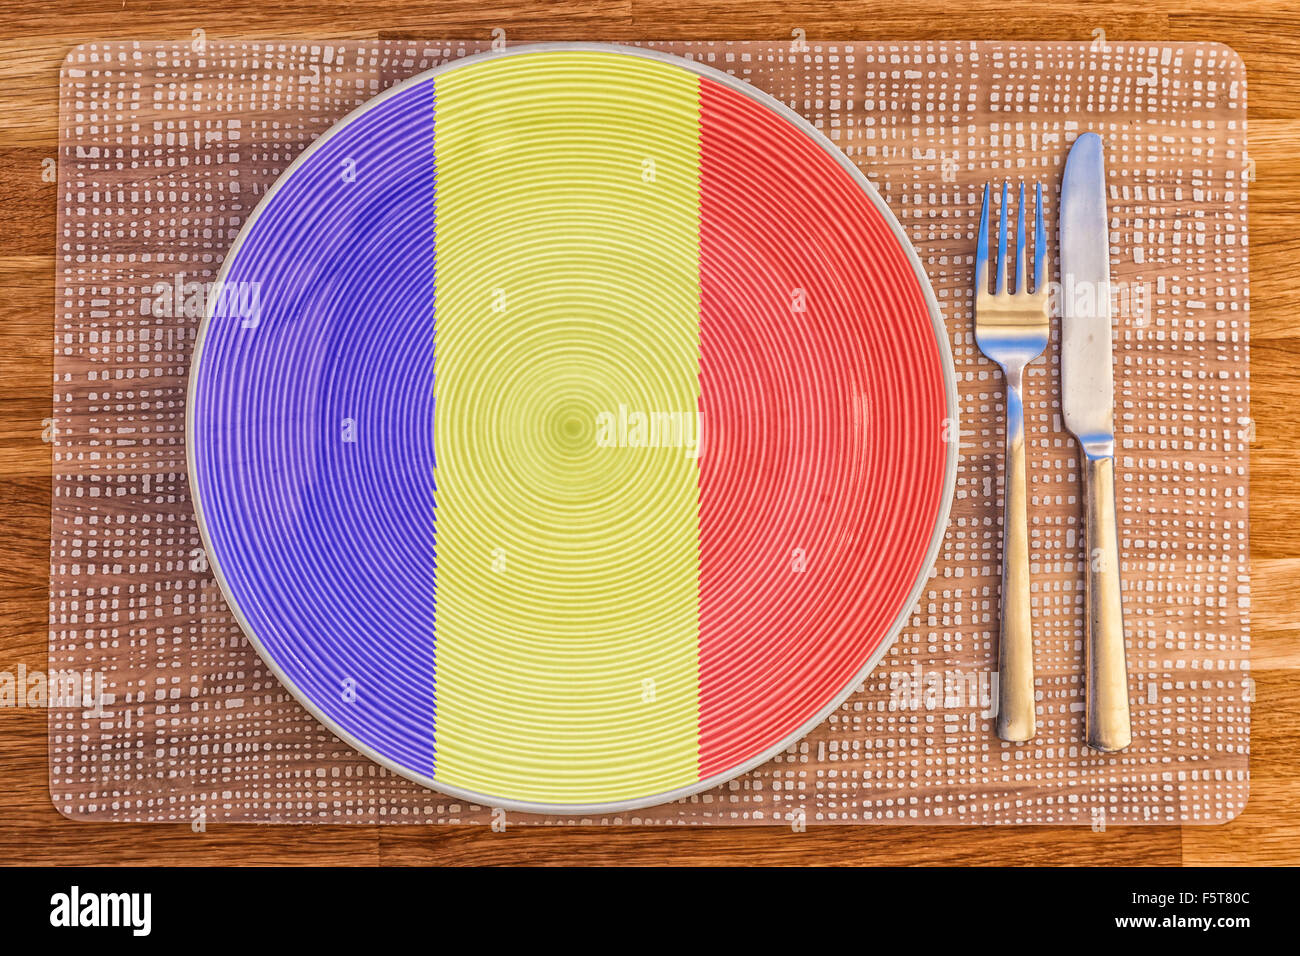 Dinner plate with the flag of Chad on it for your international food and drink concepts. Stock Photo